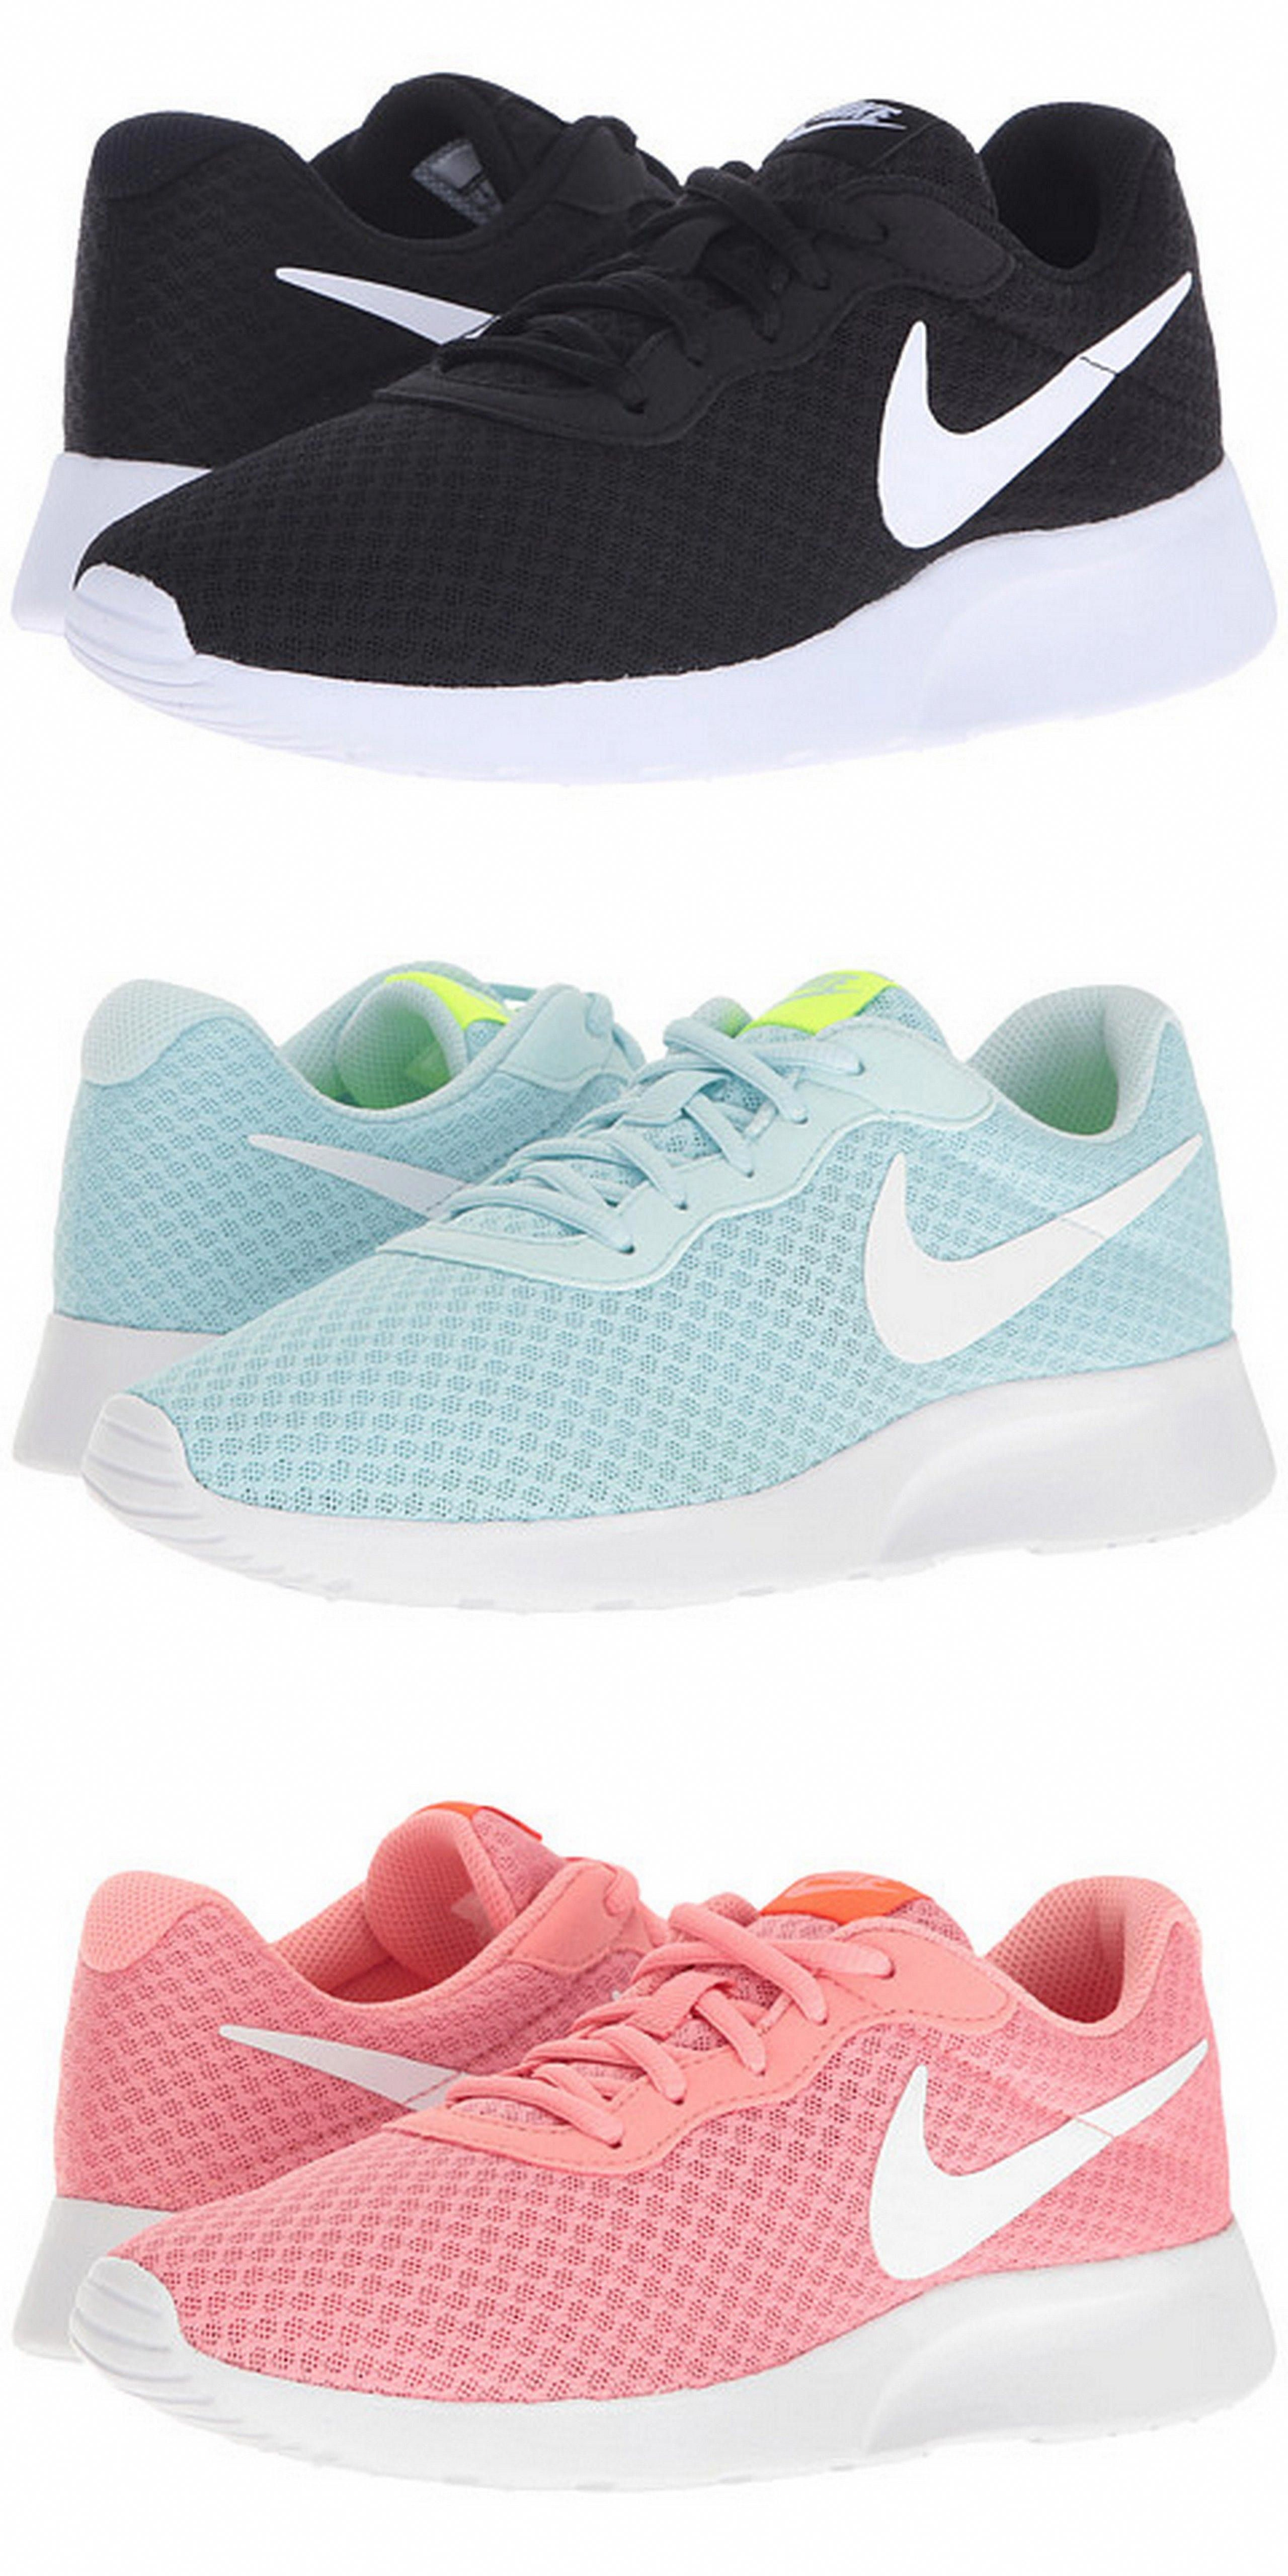 competitive price 8c574 11f1b Nike - Tanjun Women s Running Shoes  runningshoes